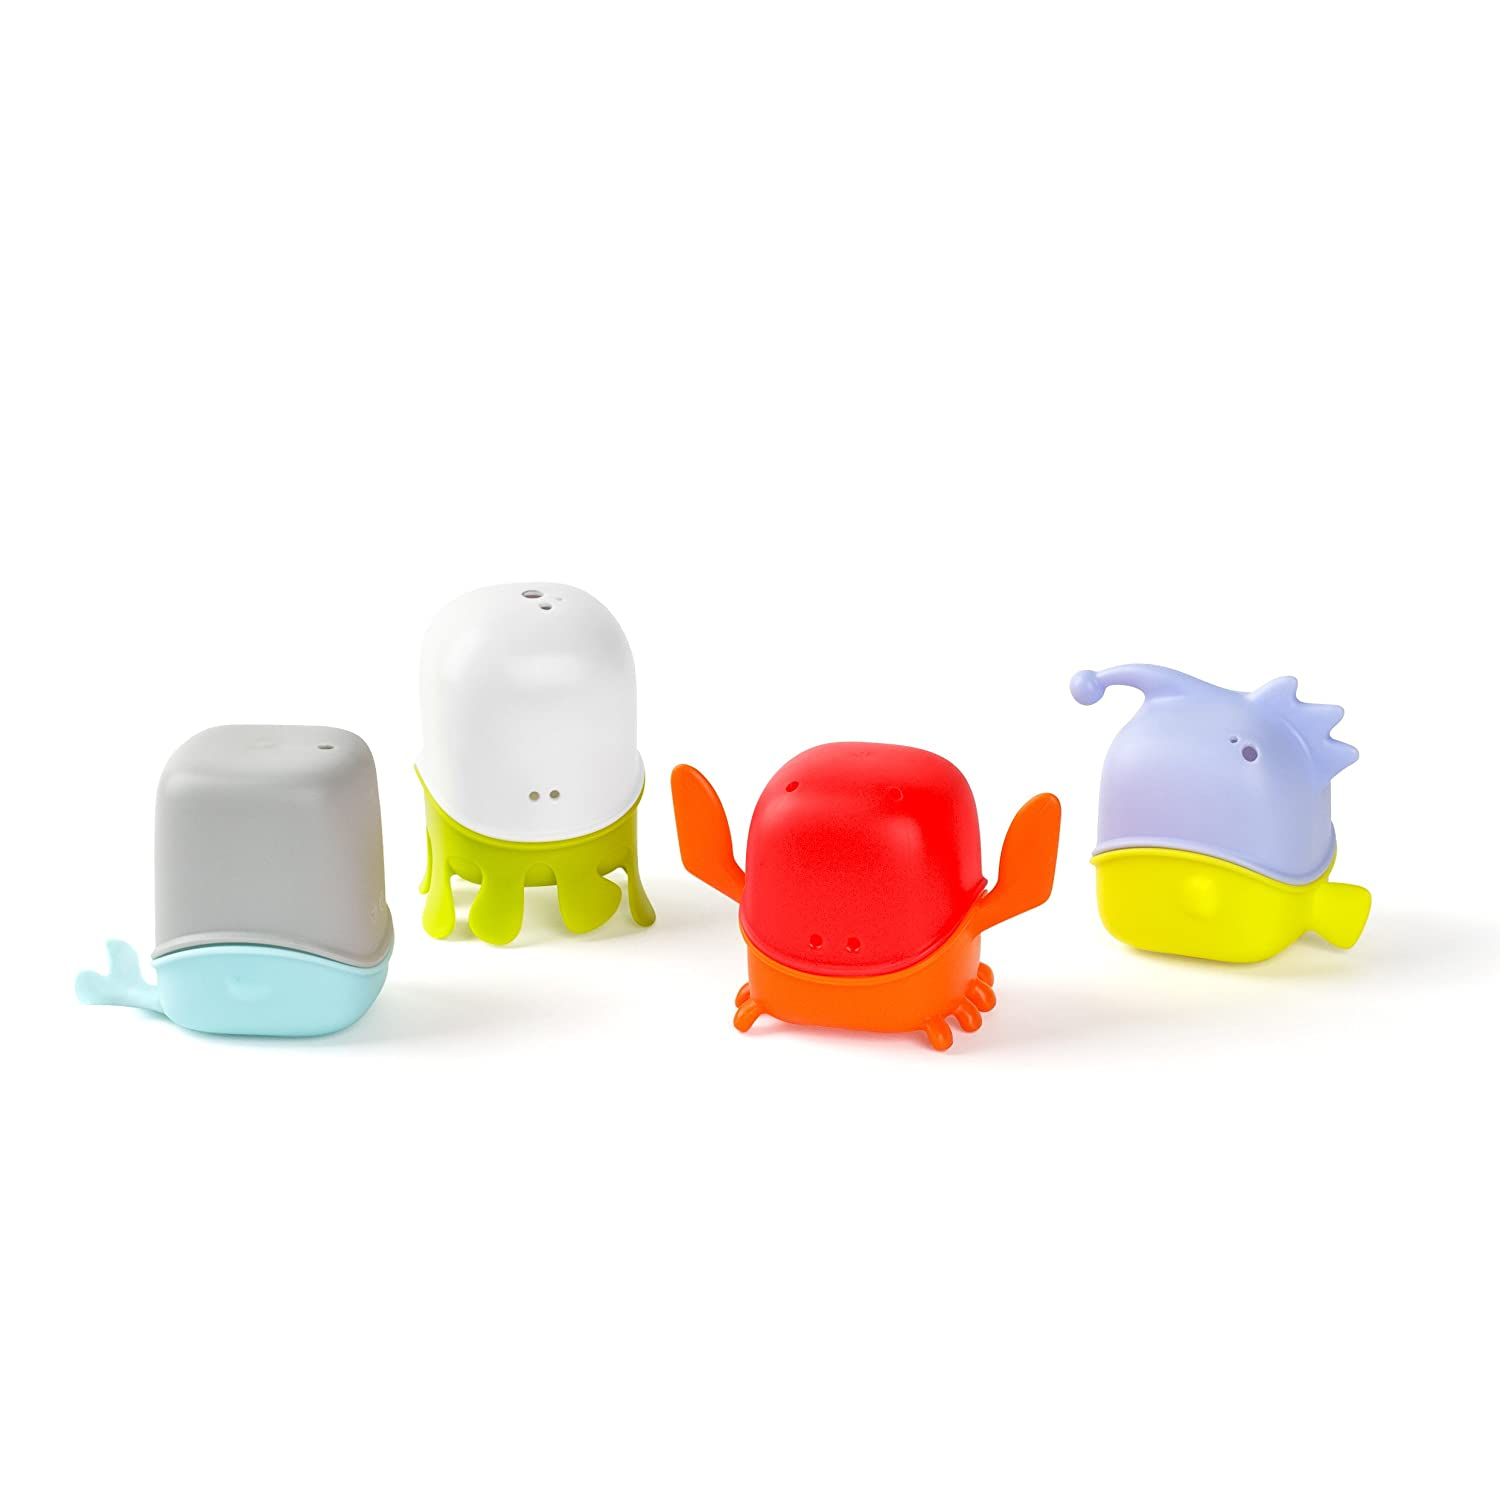 Toddler Bath Toys : The best bathtub toys for toddlers